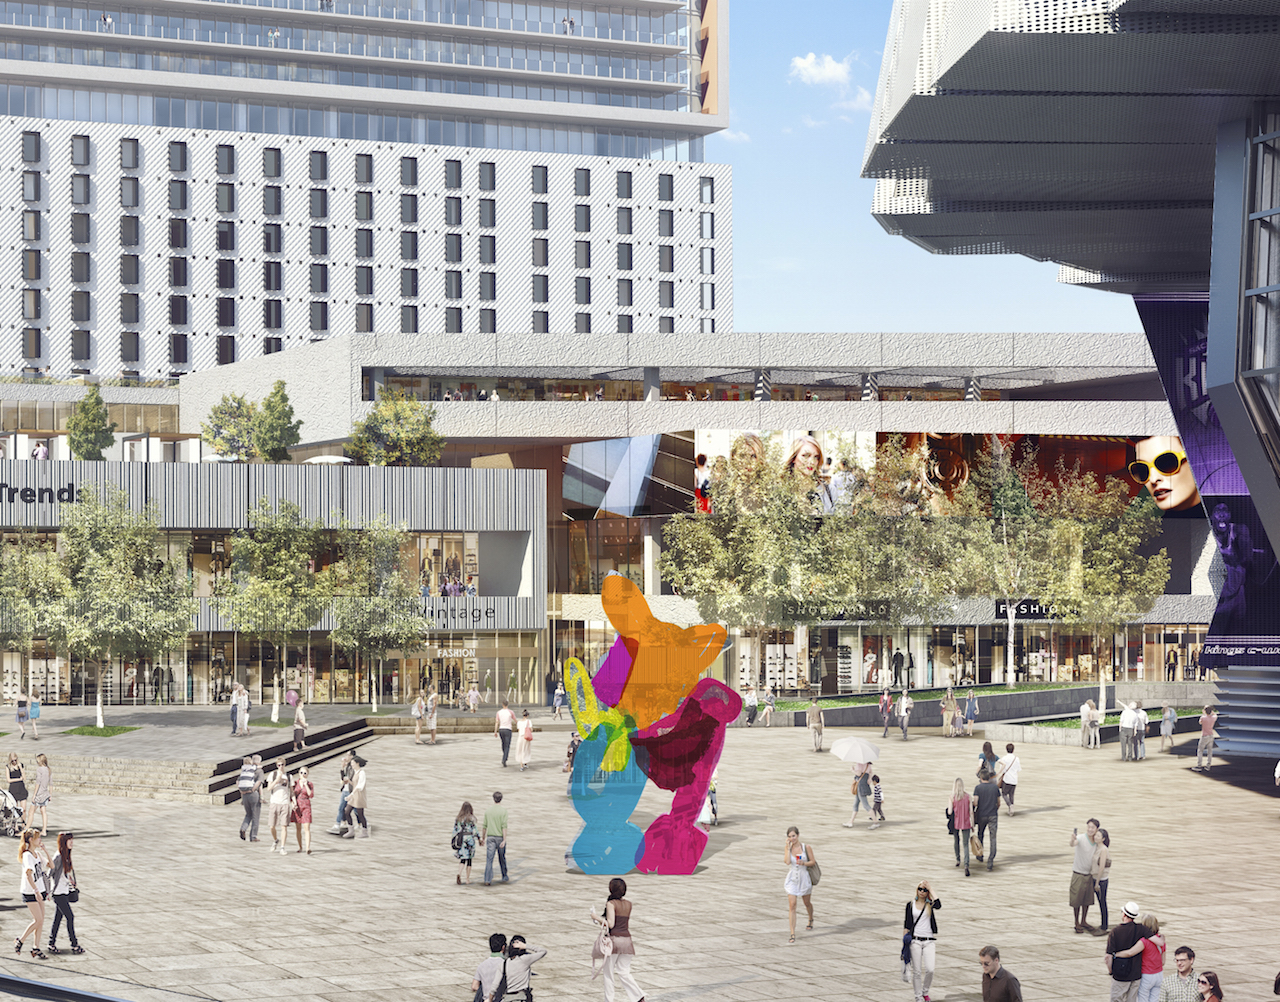 A rendering of the Jeff Koons sculpture in the Entertainment and Sports Center plaza (courtesy the Sacramento Kings)